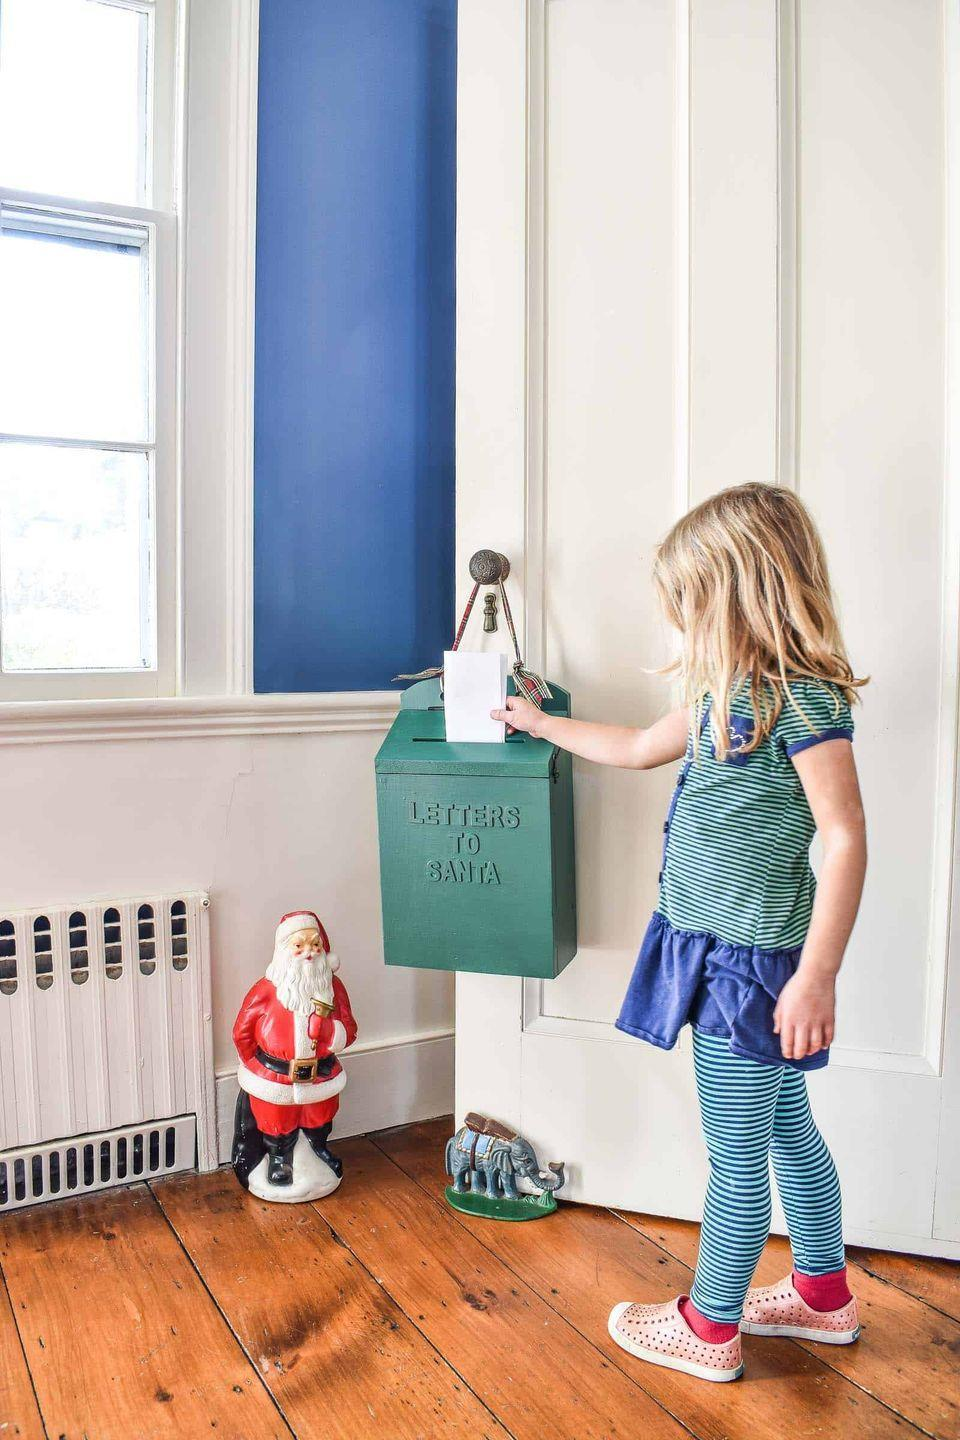 "<p>This wooden ""Letters to Santa"" mailbox will continue to make a sweet holiday decoration, no matter how old your kids are.</p><p><strong>Get the tutorial at <a href=""https://atcharlotteshouse.com/diy-santa-mailbox/"" rel=""nofollow noopener"" target=""_blank"" data-ylk=""slk:at Charlotte's House"" class=""link rapid-noclick-resp"">at Charlotte's House</a>.</strong></p><p><a class=""link rapid-noclick-resp"" href=""https://www.amazon.com/slp/wood-letters-craft-decorations/f9ekfz92rghe4c5?tag=syn-yahoo-20&ascsubtag=%5Bartid%7C10050.g.33605249%5Bsrc%7Cyahoo-us"" rel=""nofollow noopener"" target=""_blank"" data-ylk=""slk:SHOP WOOD CRAFT LETTERS"">SHOP WOOD CRAFT LETTERS</a><br></p>"